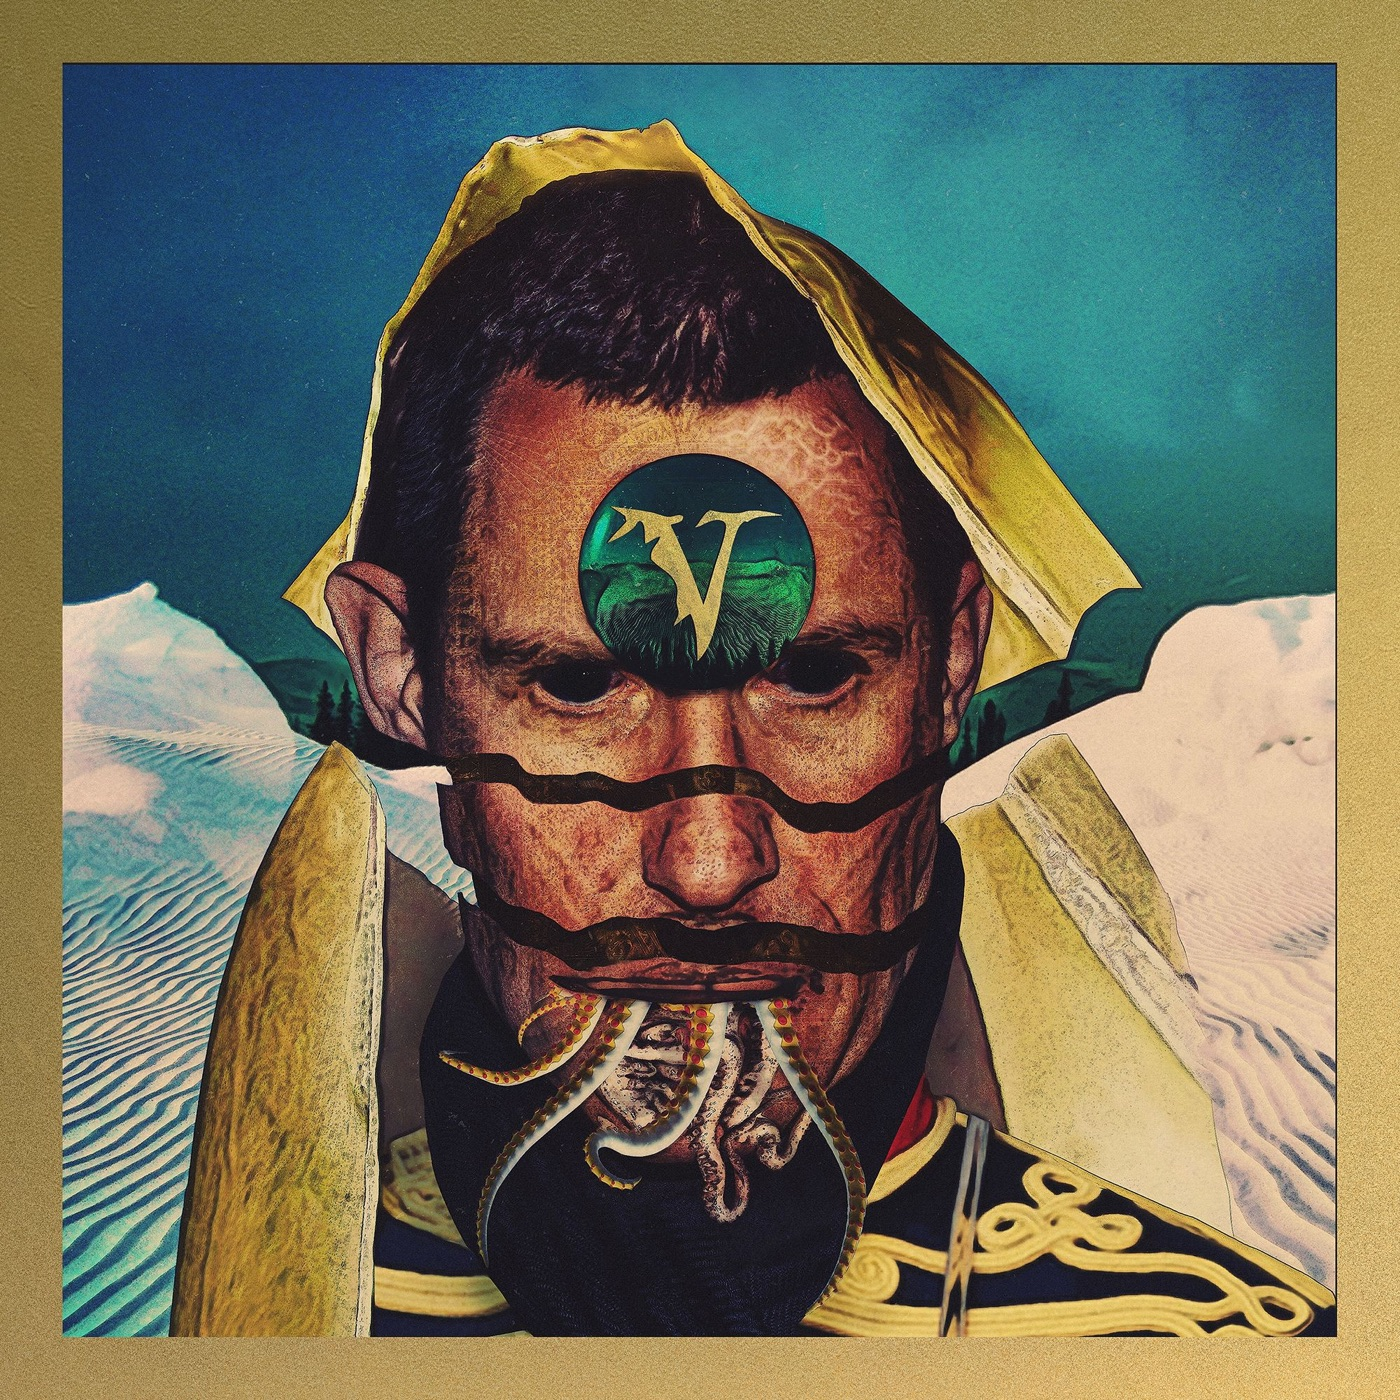 Veil of Maya - Doublespeak [single] (2017)